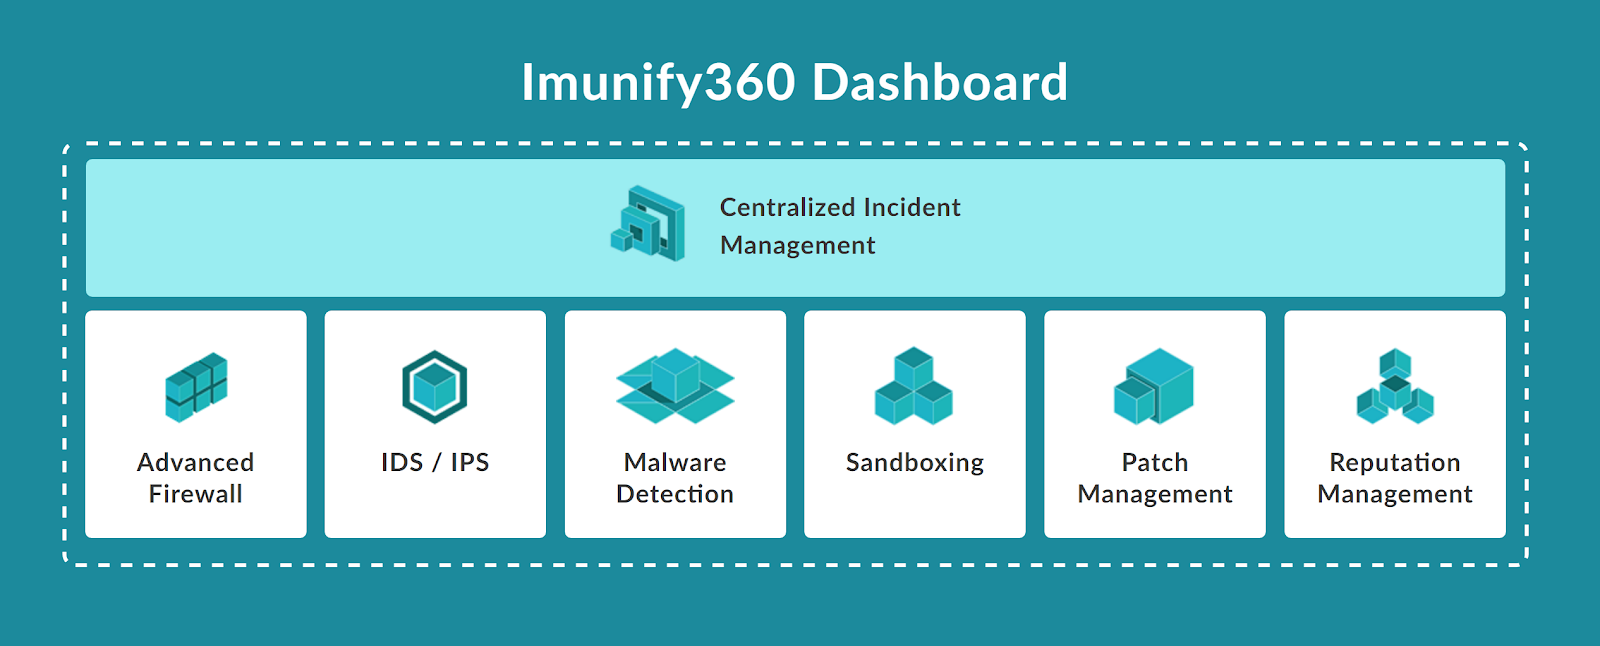 Imunify360 Centralized Dashboard